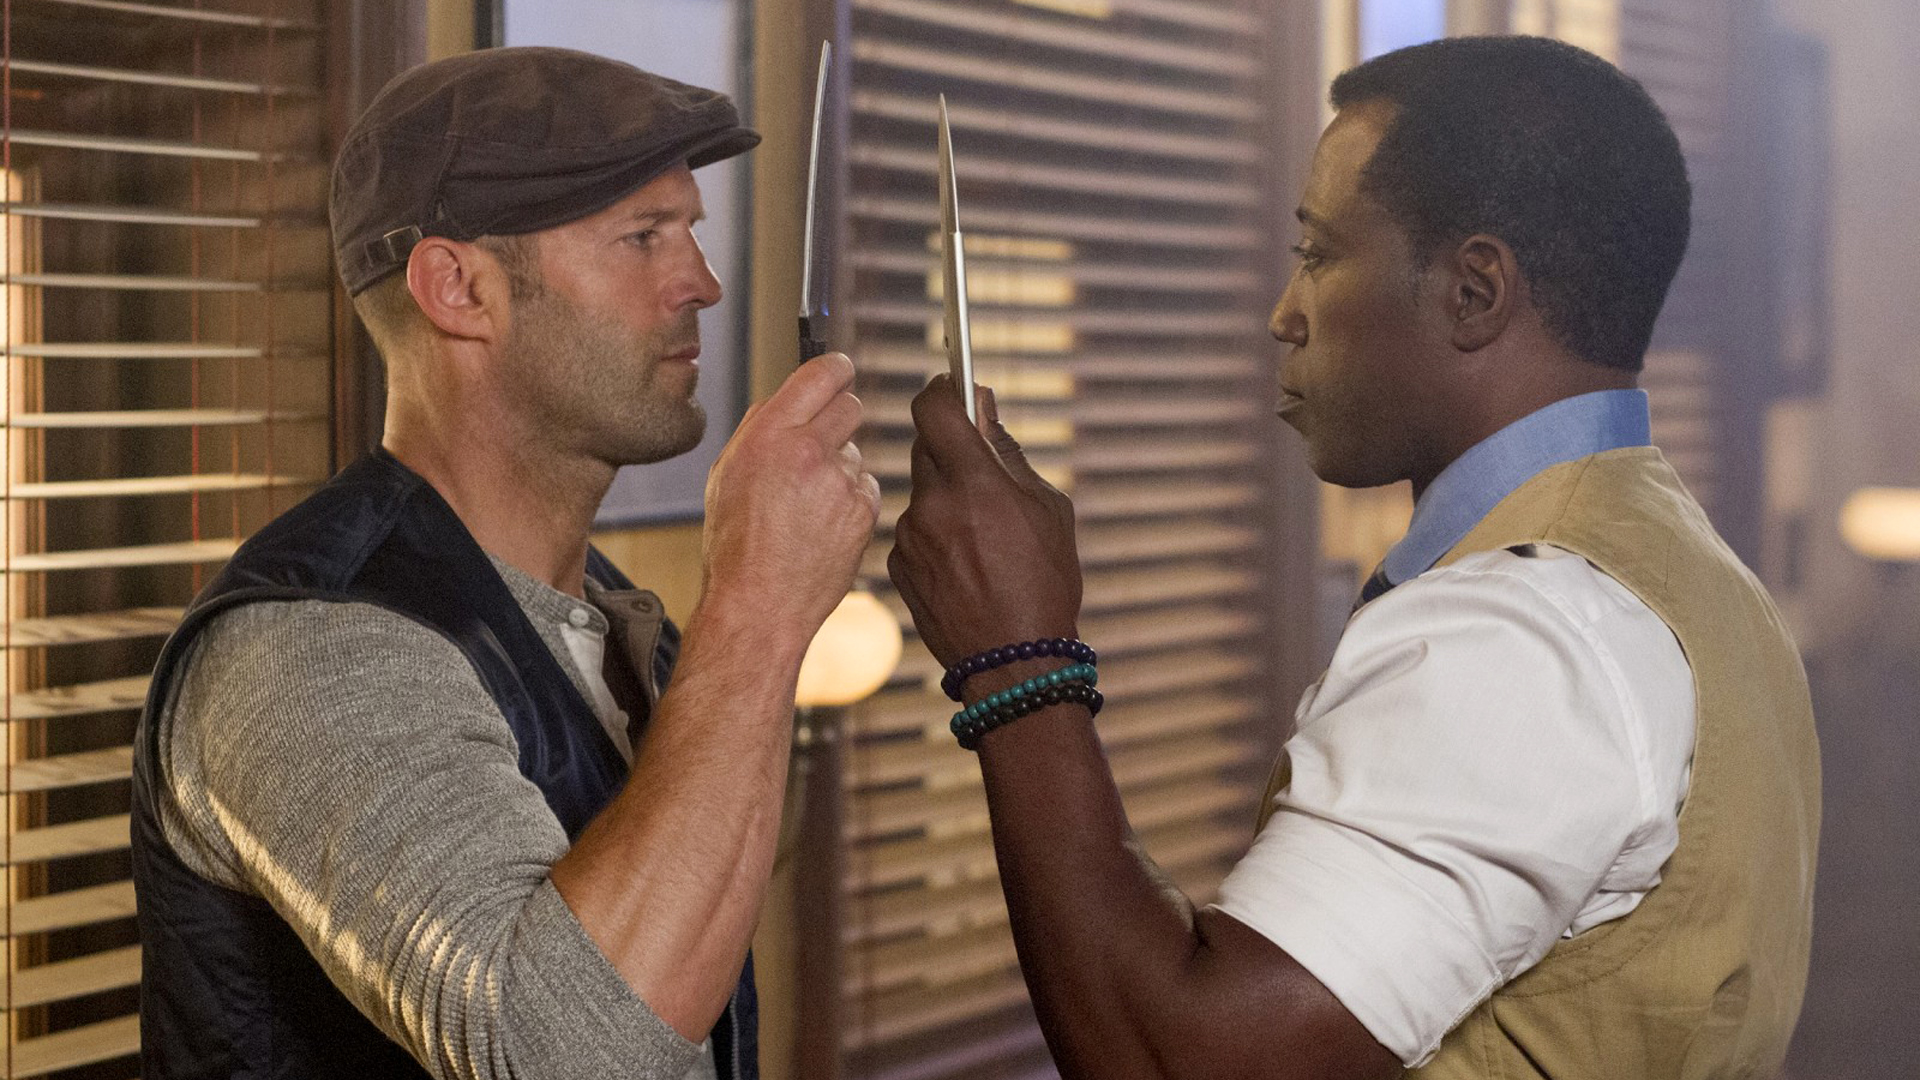 snipes and statham expendables 3 wallpaper hd